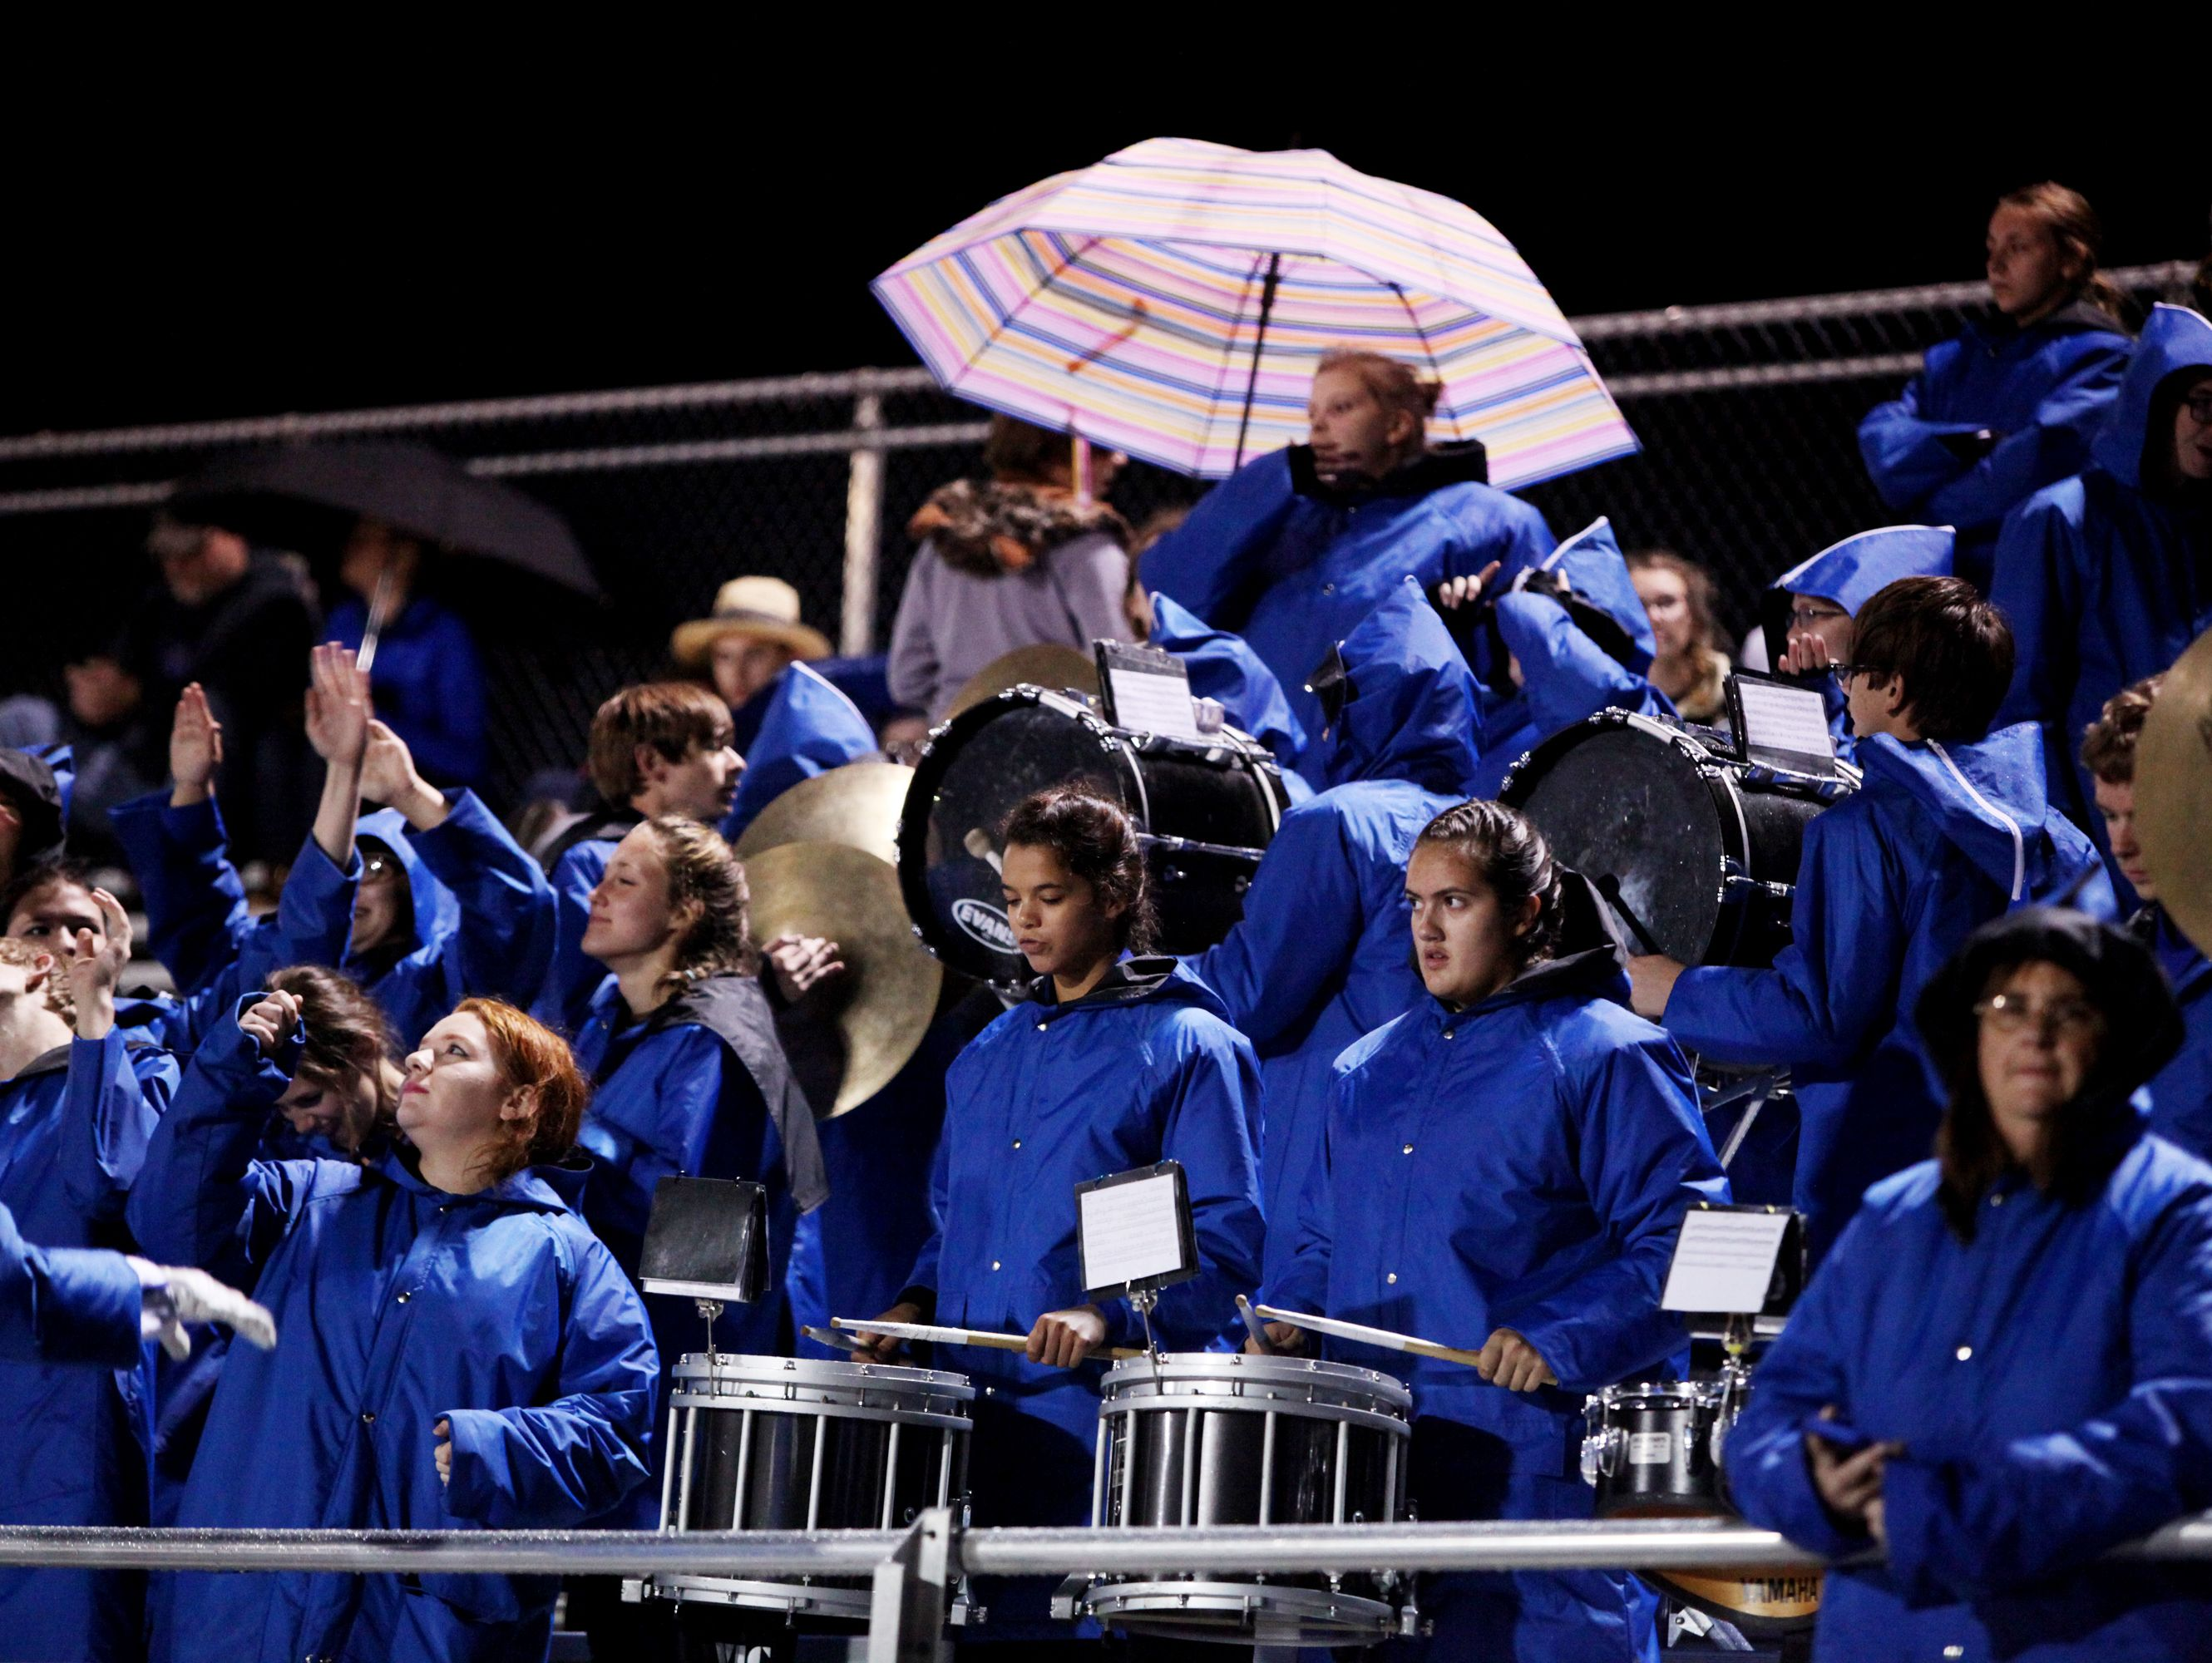 The Fort Defiance High School Band plays during the game against Harrisonburg on Friday, Oct. 21, 2016 at Fort Defiance.